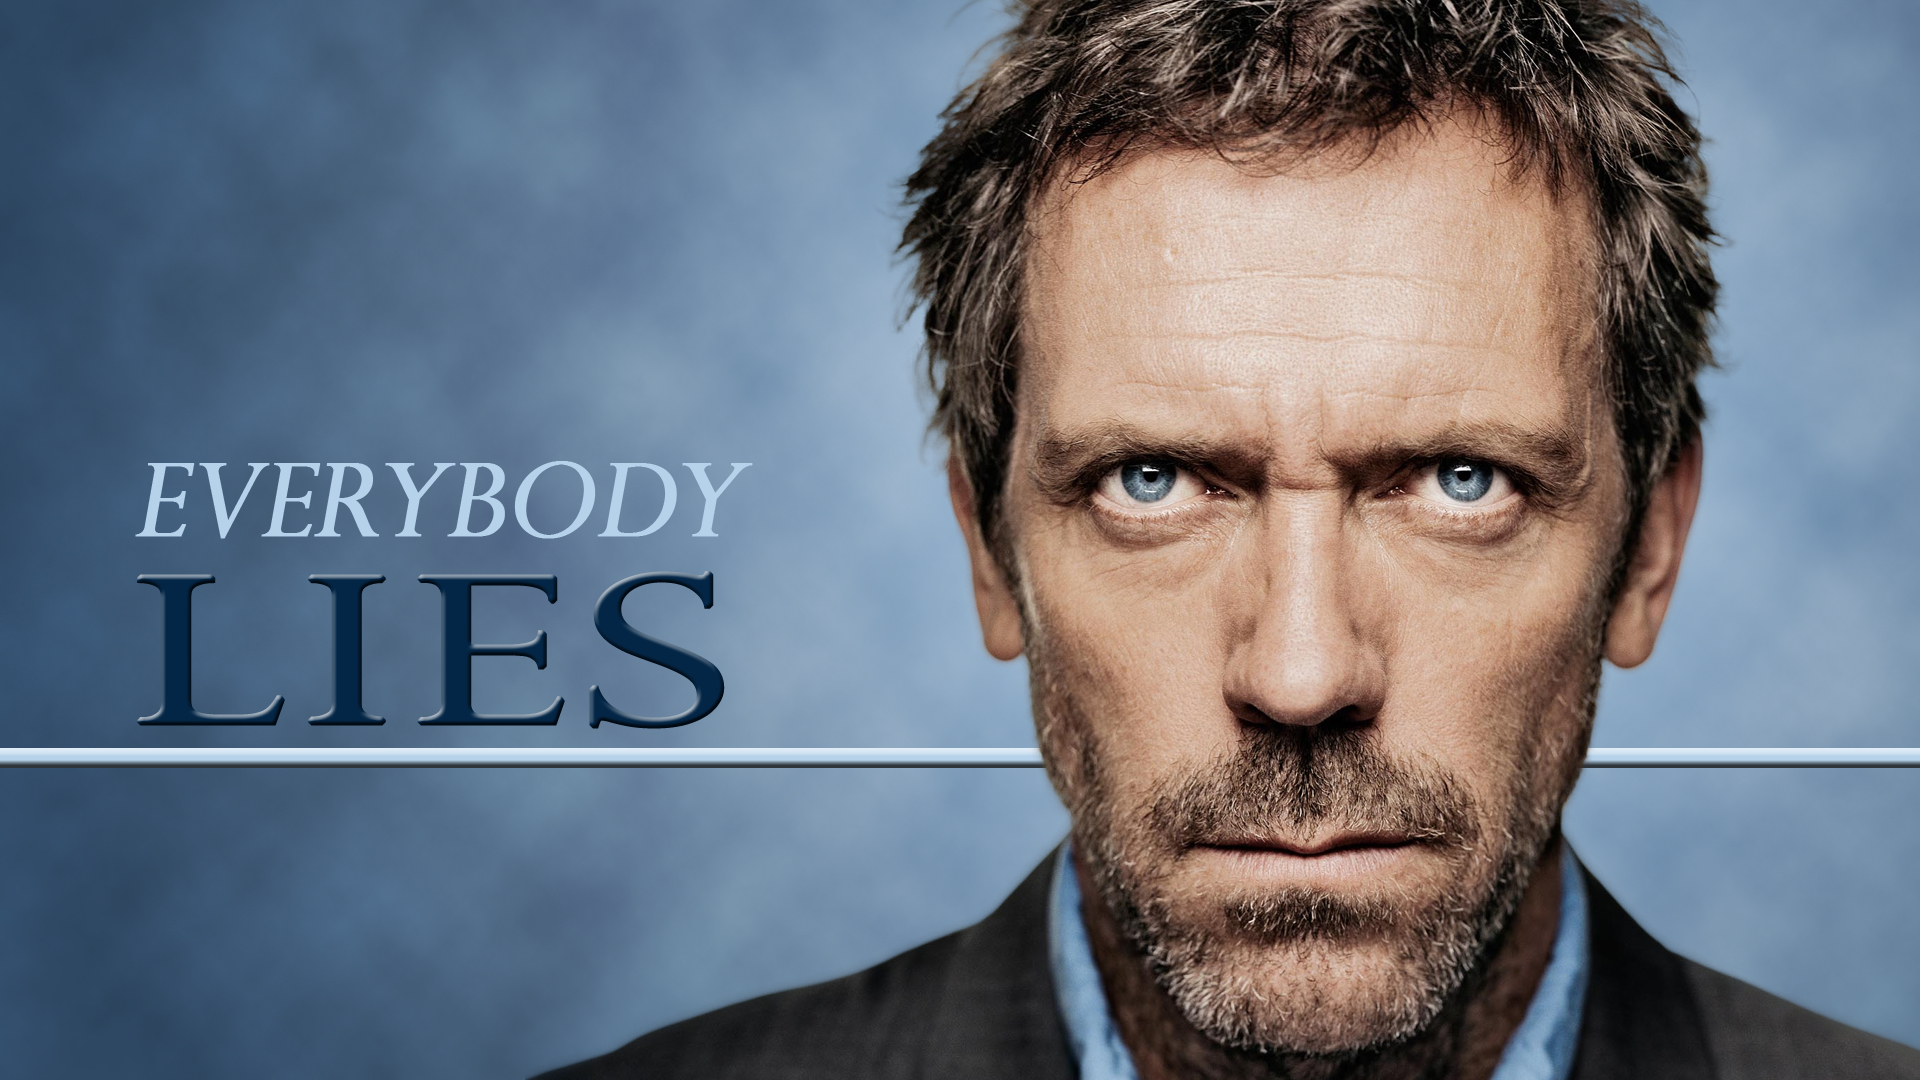 Hugh laurie House Celebrity HD Wallpaper